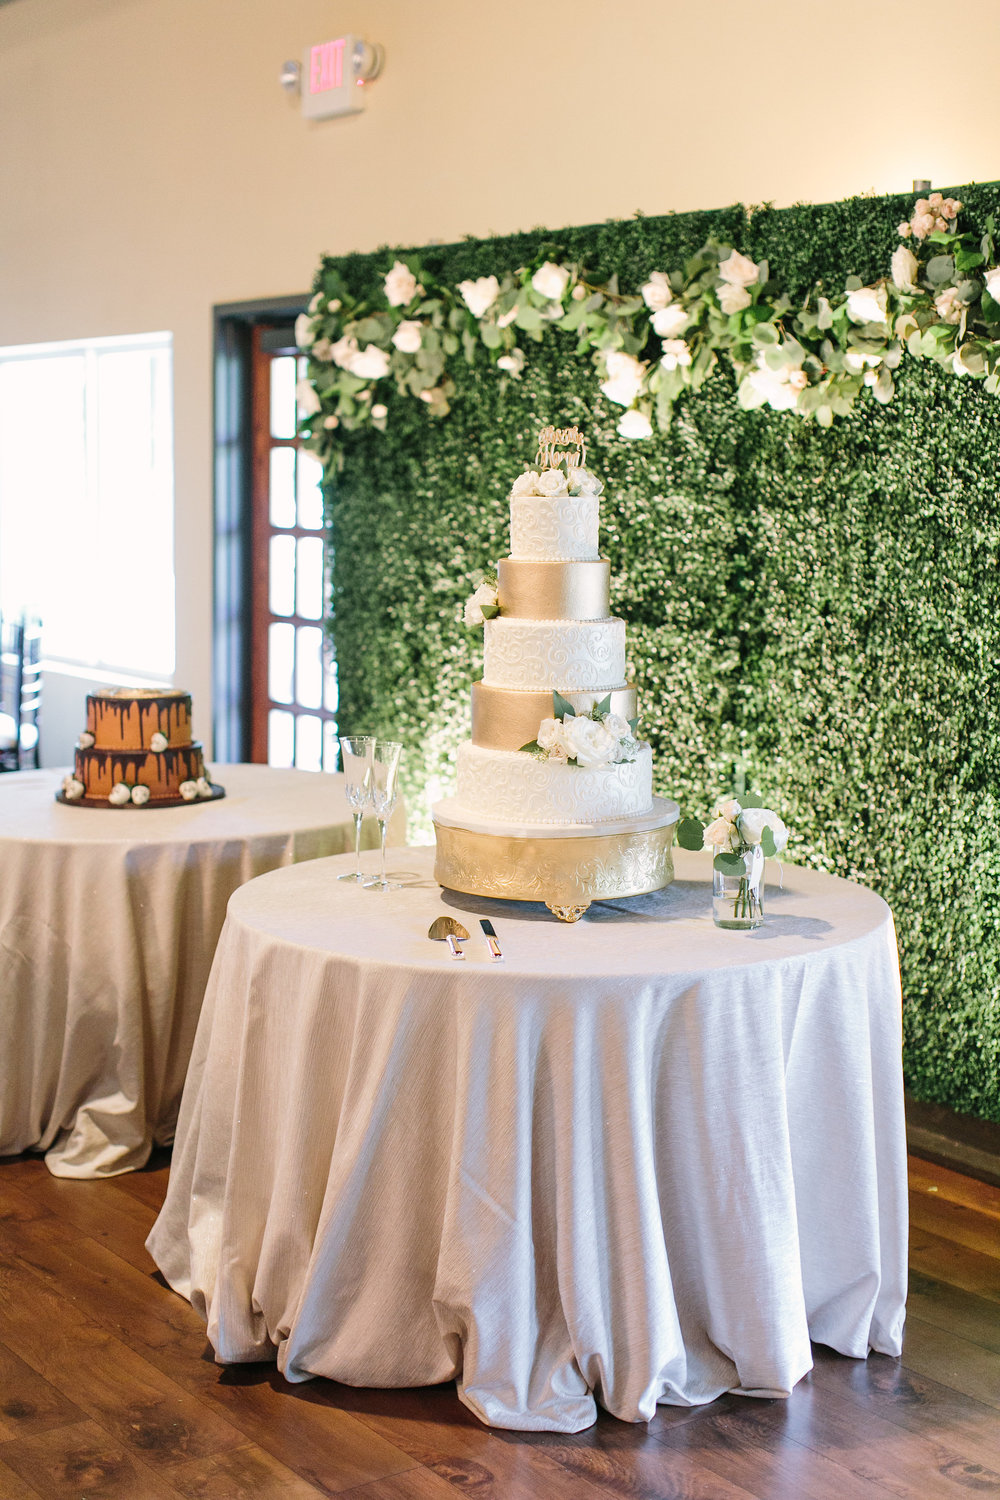 bride-groom-cake-white-gold-detail-roses-greenery-backdrop-by-maxit-flower-design-in-houston-texas